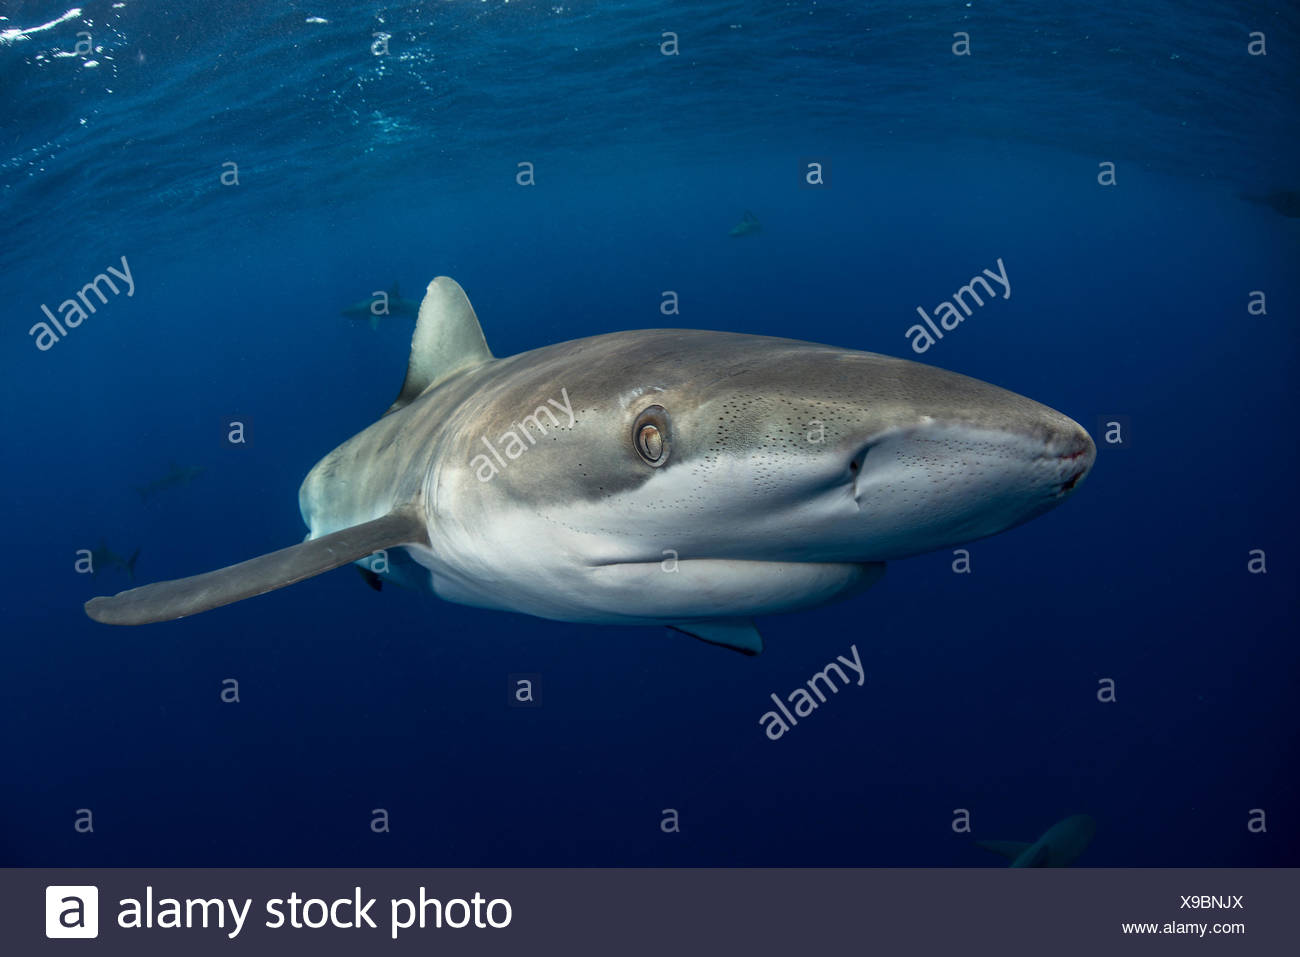 Underwater view of galapagos shark (carcharhinus galapagensis) looking at camera, Socorro, Revillagigedo, Colima, Mexico - Stock Image